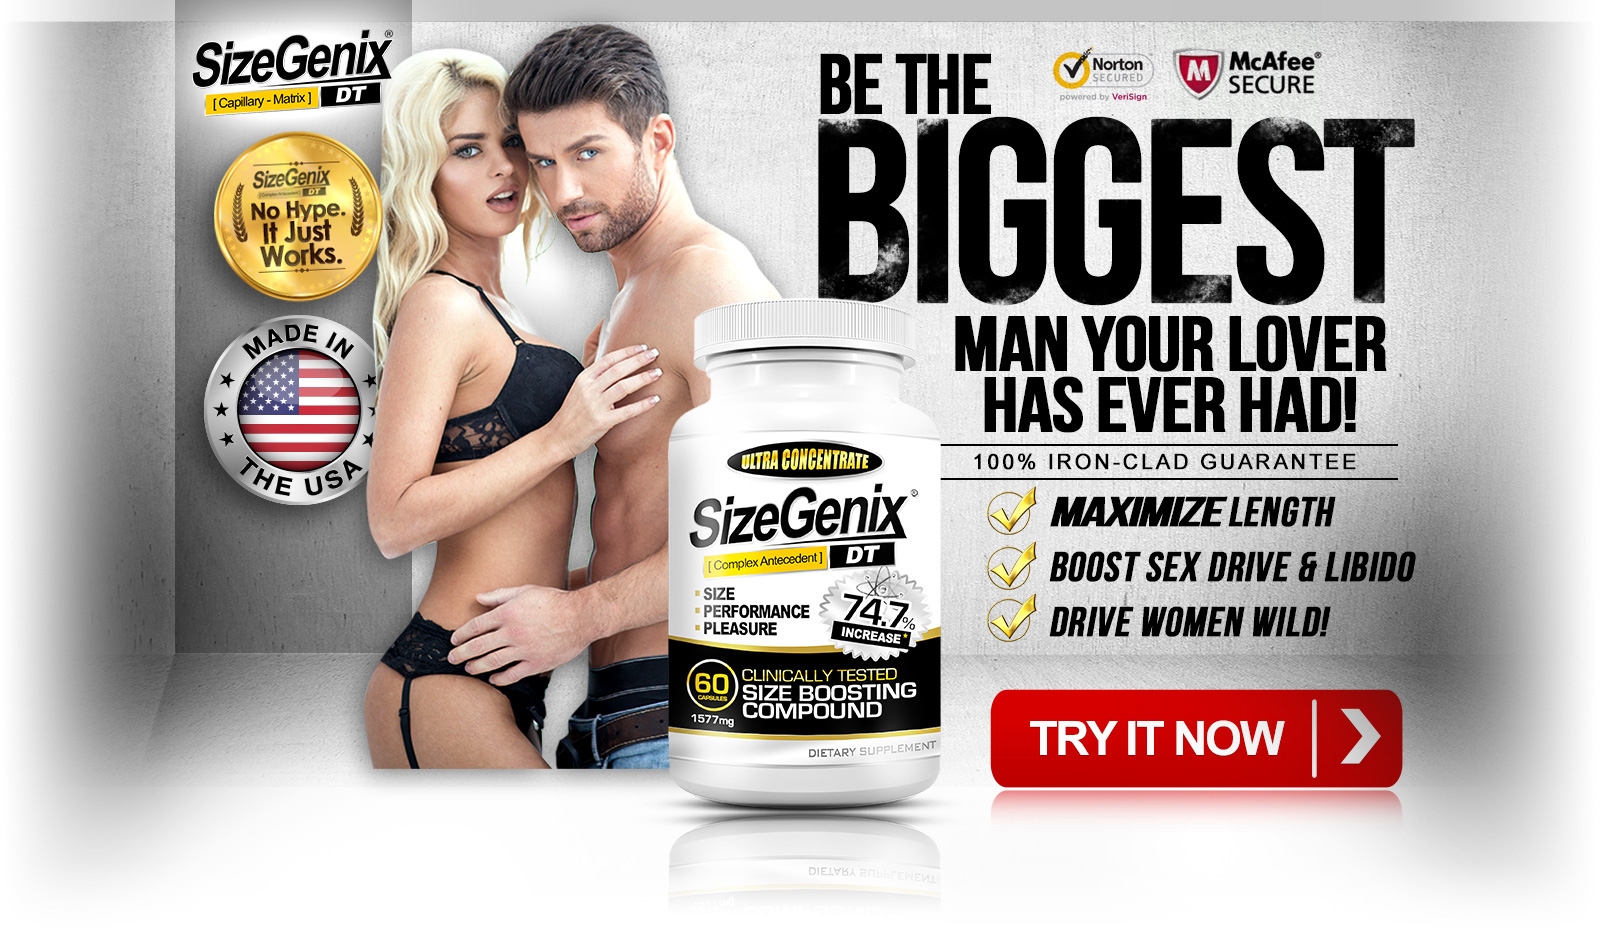 SizeGenix - Be The Biggest Man Your Lover Has Ever Had!